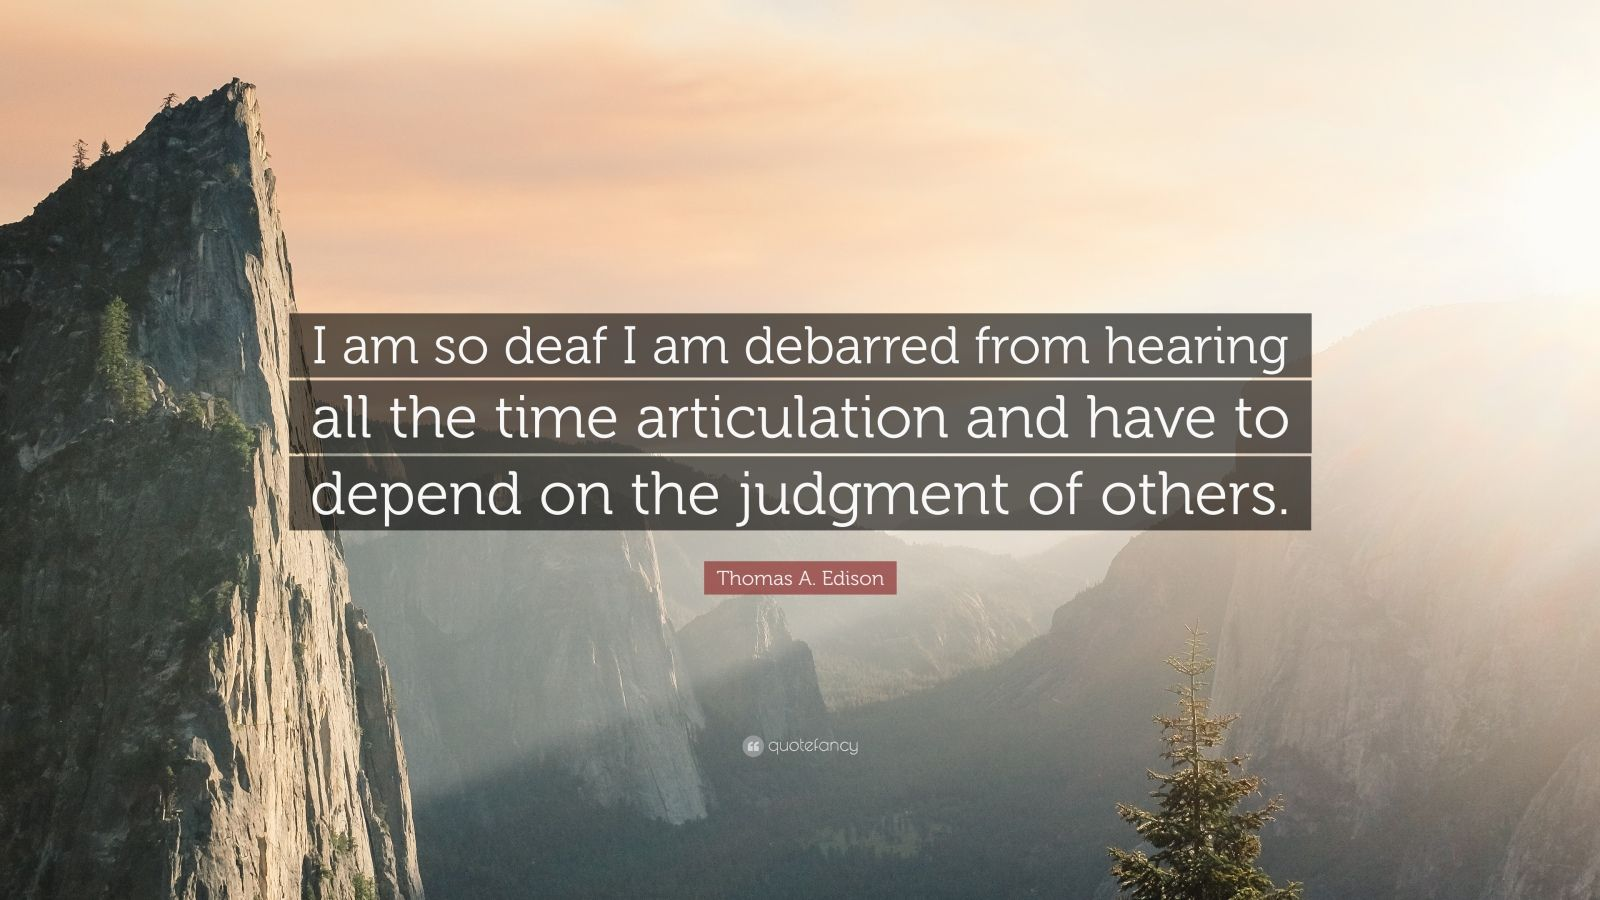 """Thomas A. Edison Quote: """"I am so deaf I am debarred from hearing all the time articulation and have to depend on the judgment of others."""""""